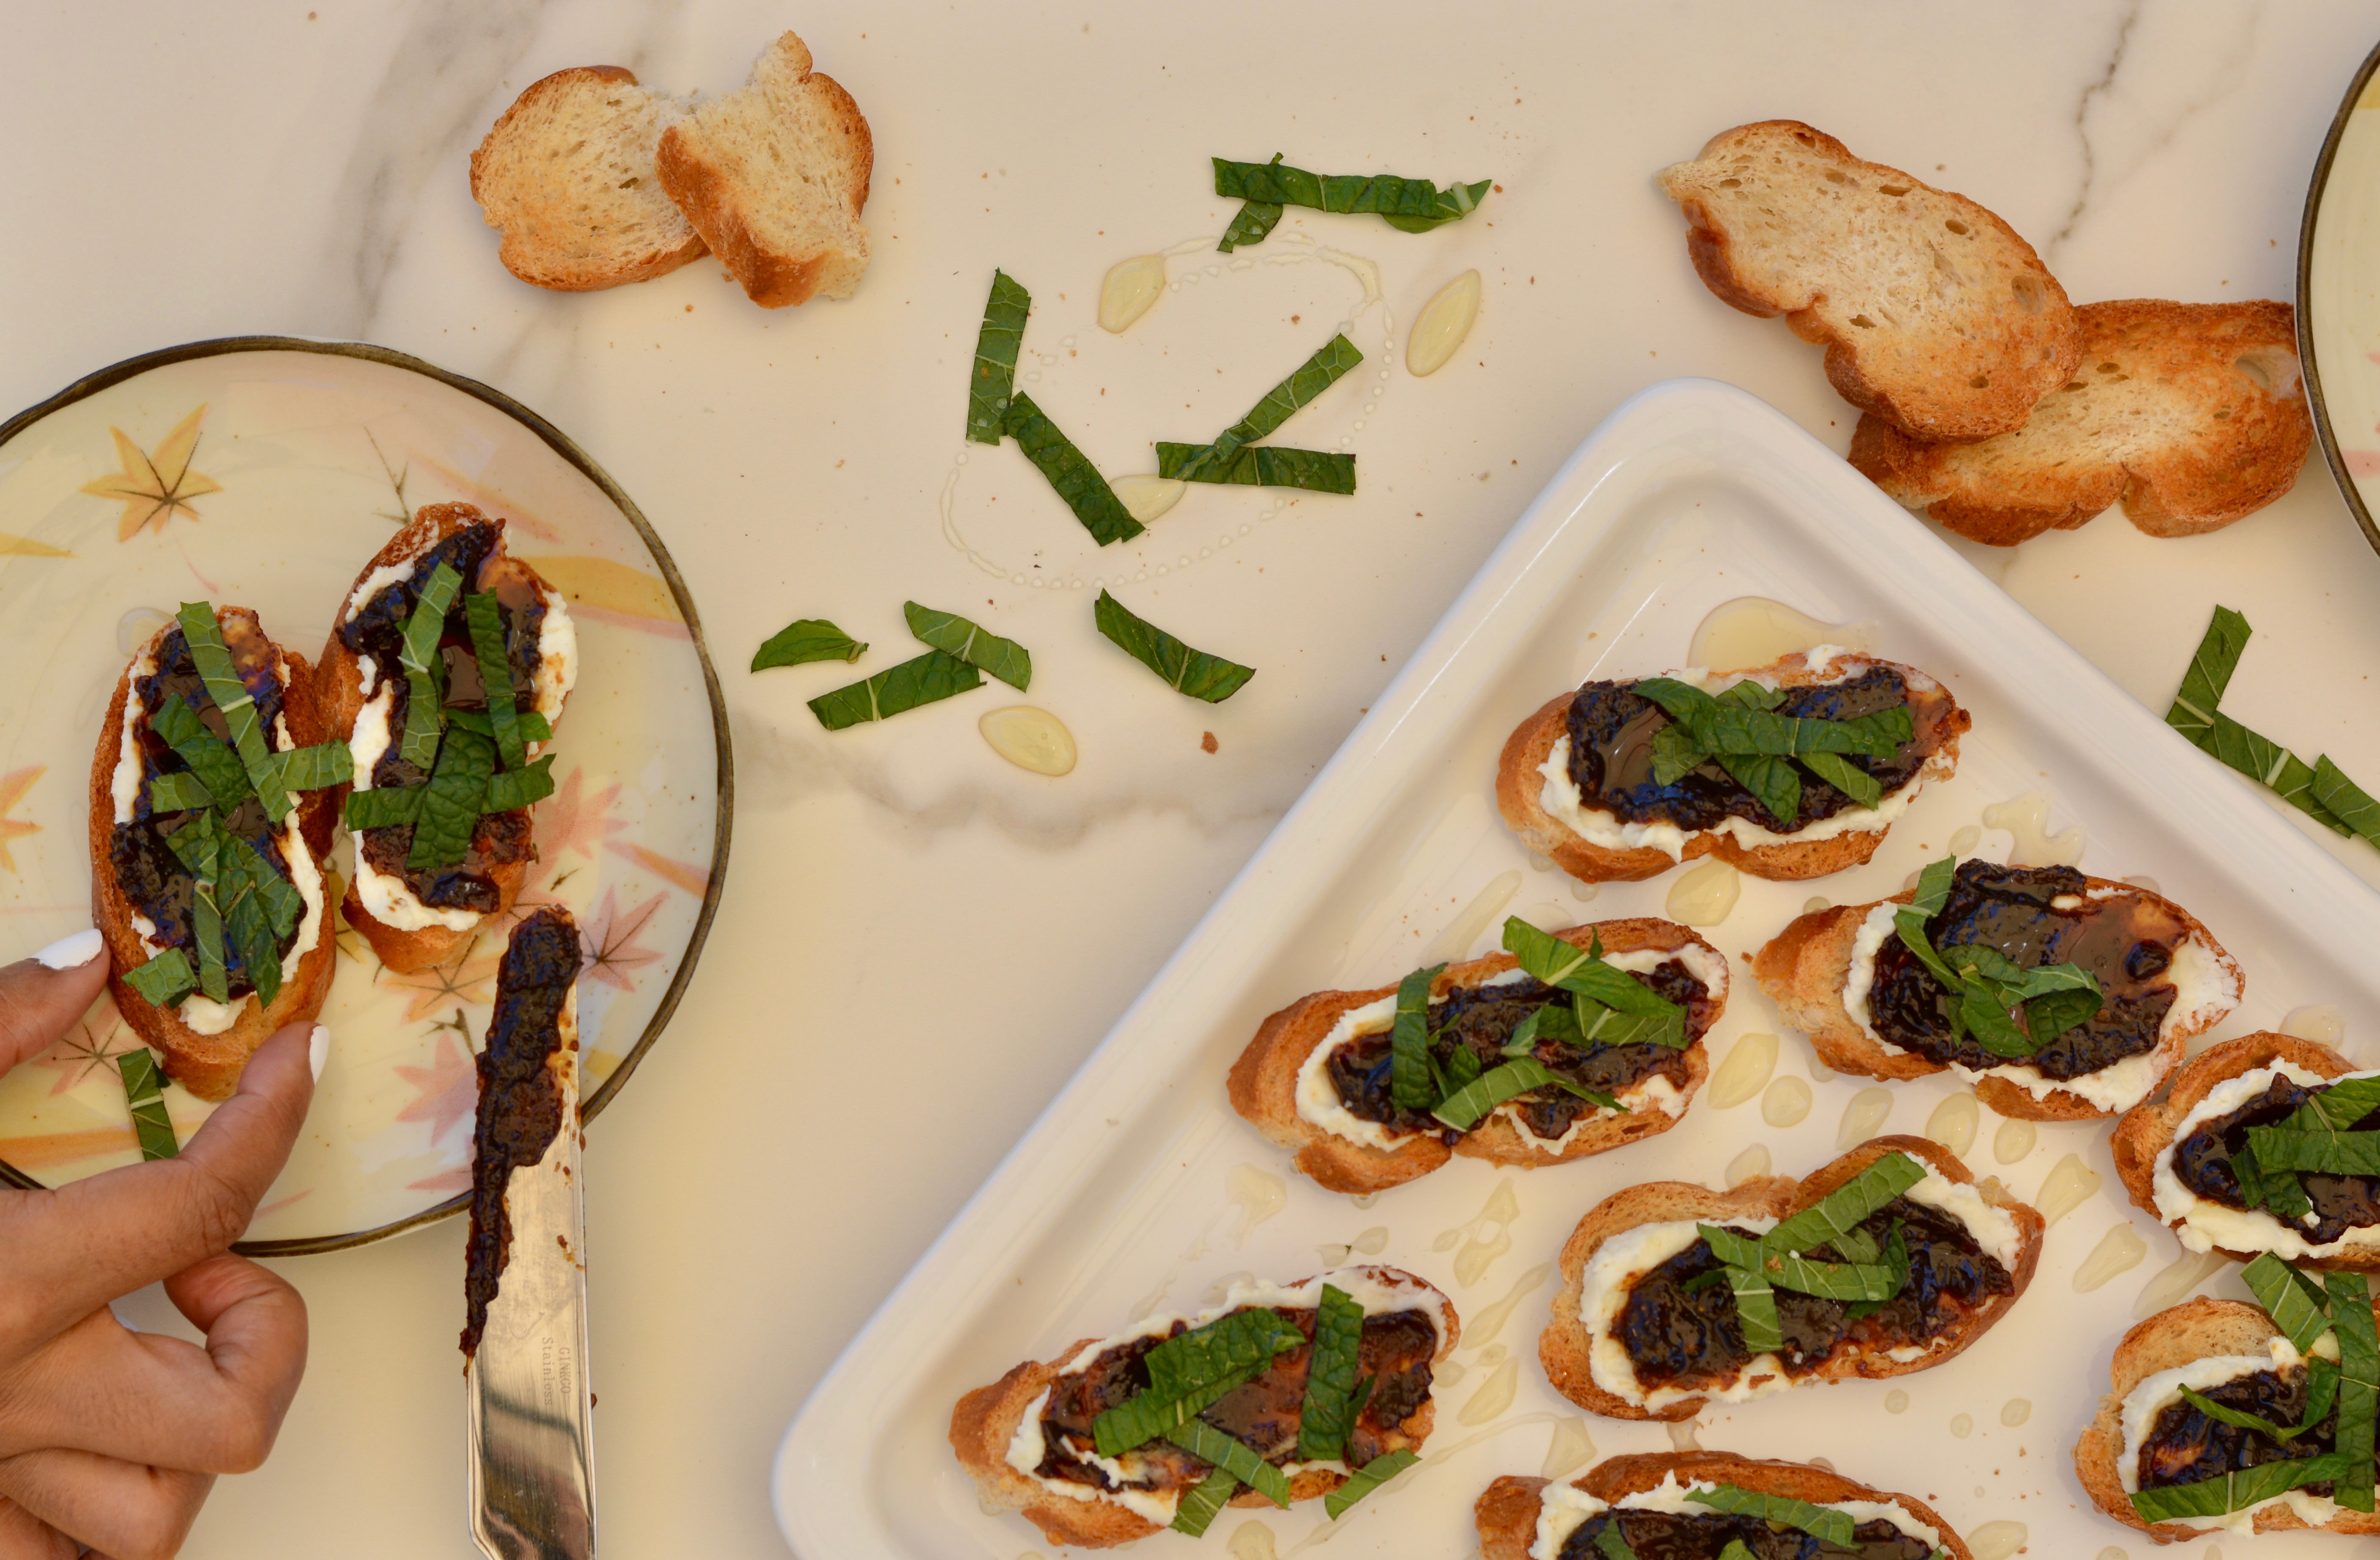 Goat Cheese Crostini Appetizer with Honey, Fig Jam and Fresh Mint.